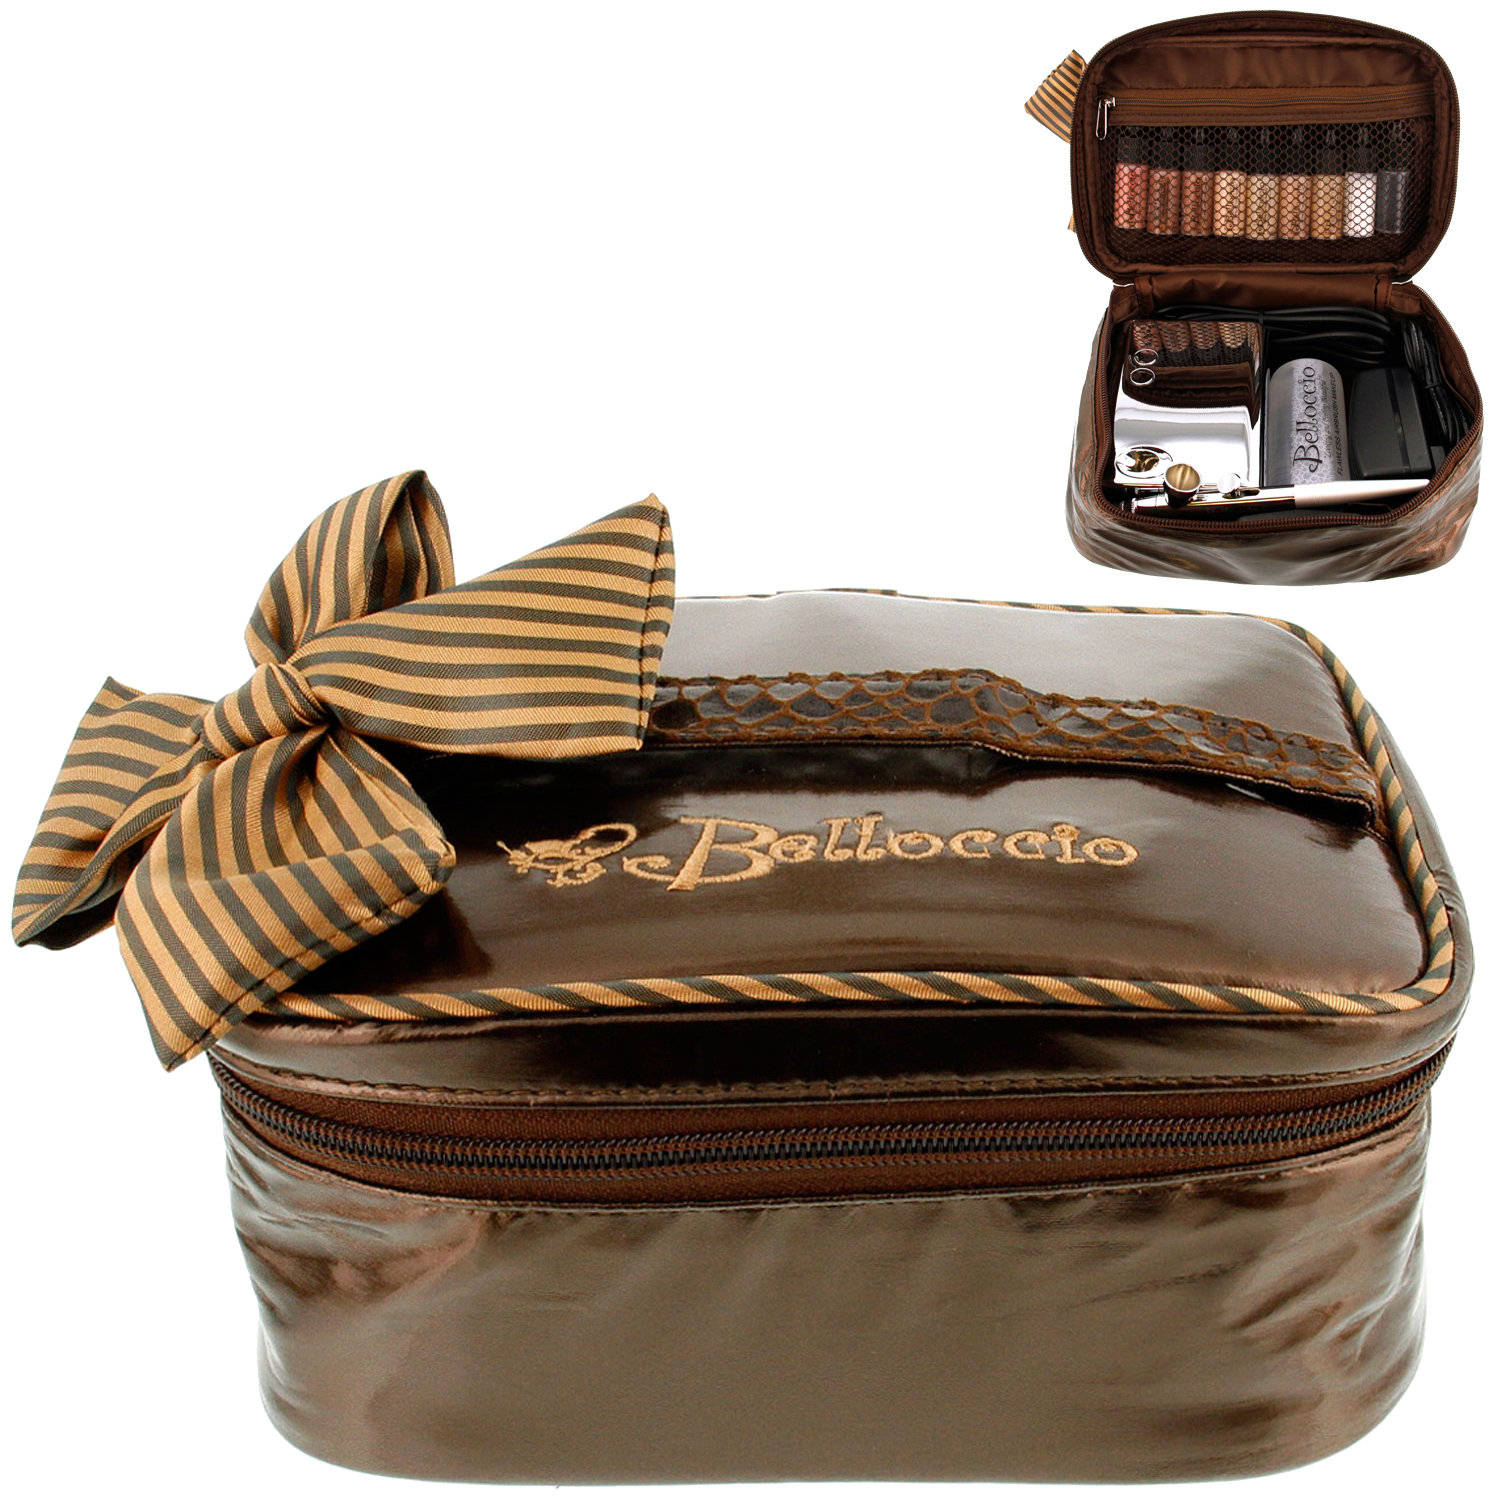 Belloccio Airbrush Makeup Travel Carry Bag Brown Cosmetic Organizer Storage Case